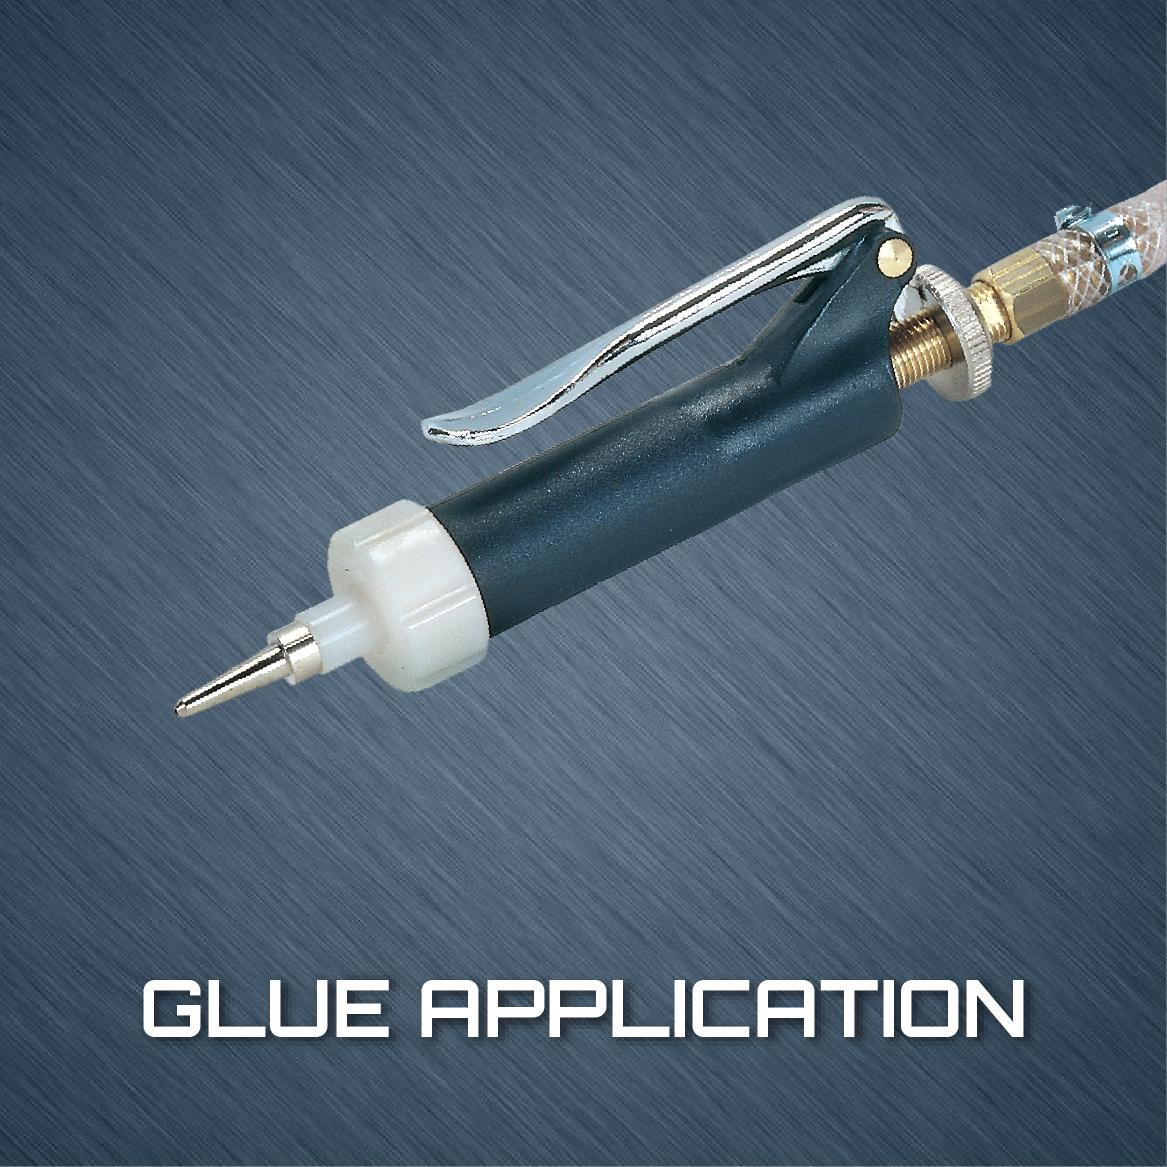 Glue Application